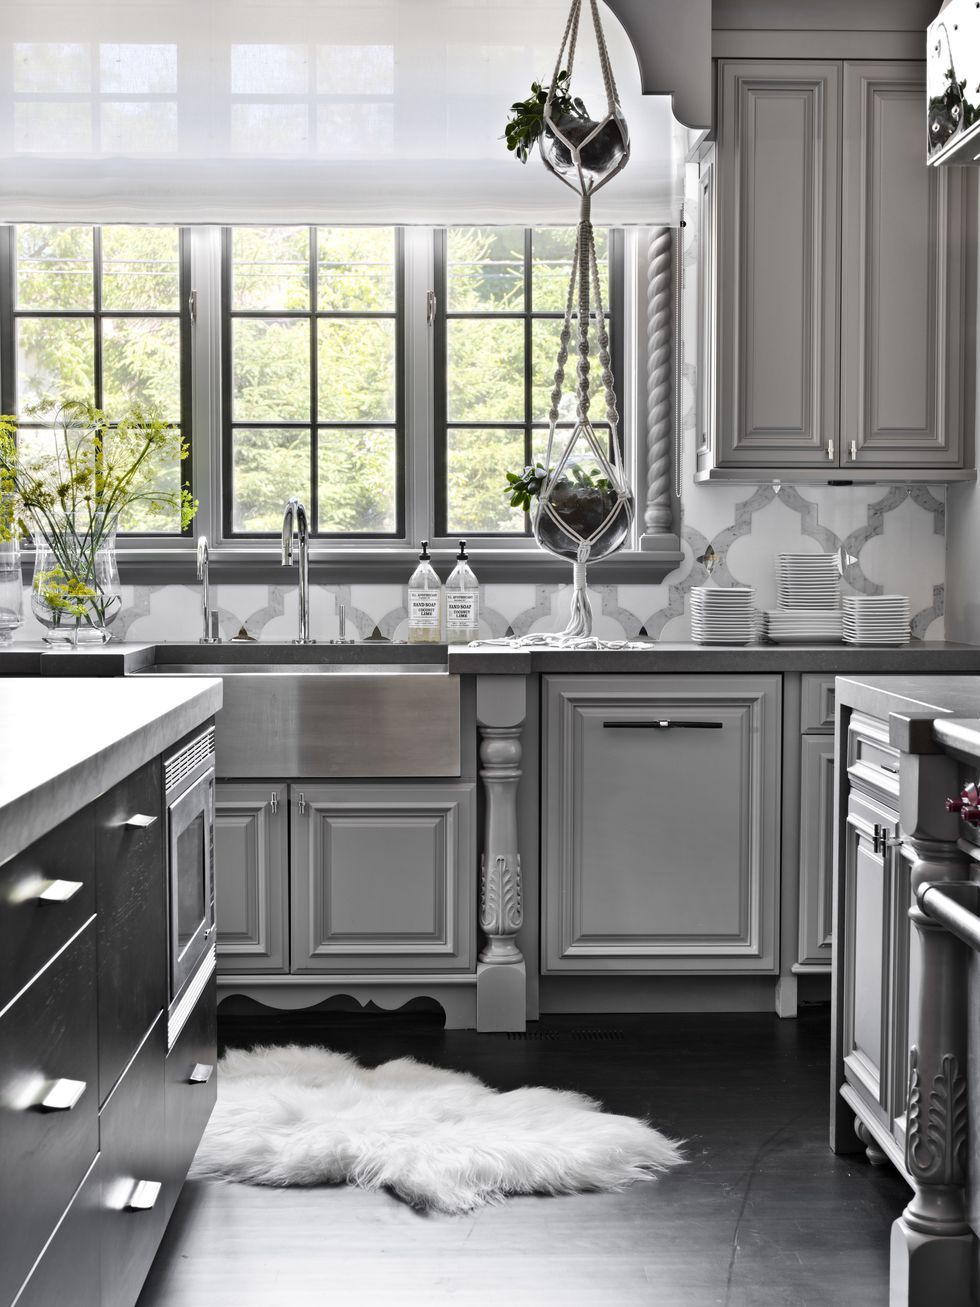 20 Gorgeous Kitchen Tile Backsplashes Ideas Splash